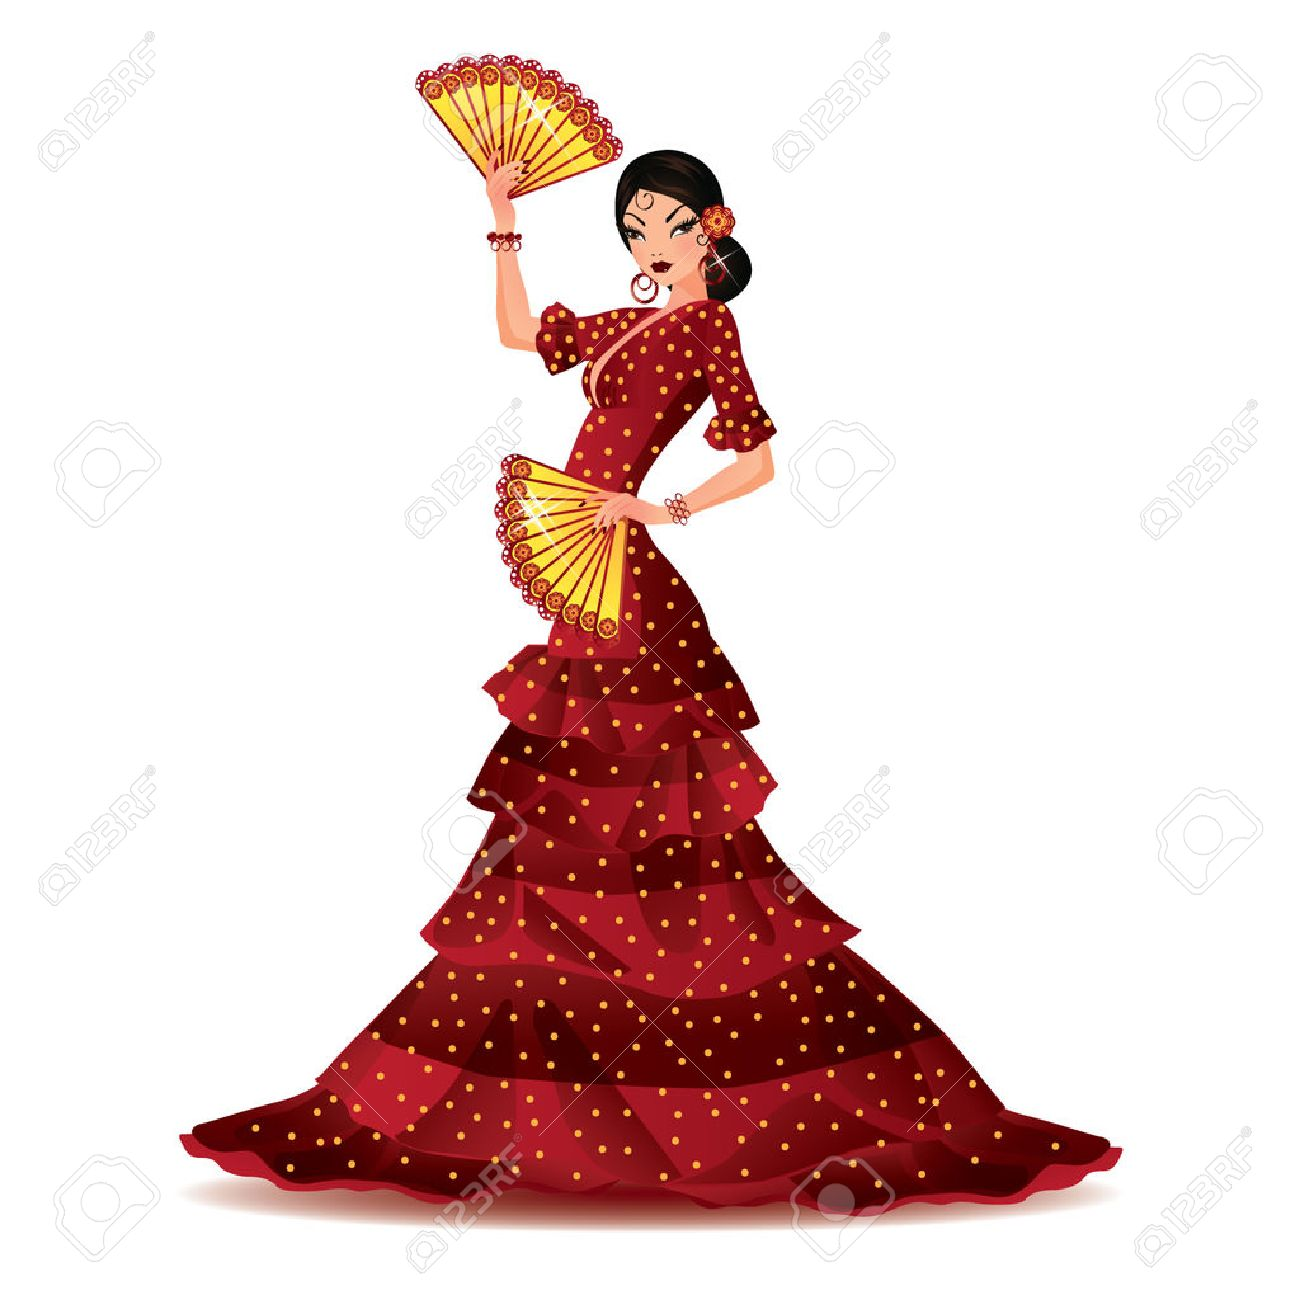 Spanish girl with two fans dances a flamenco, vector illustration Stock Vector - 8781956